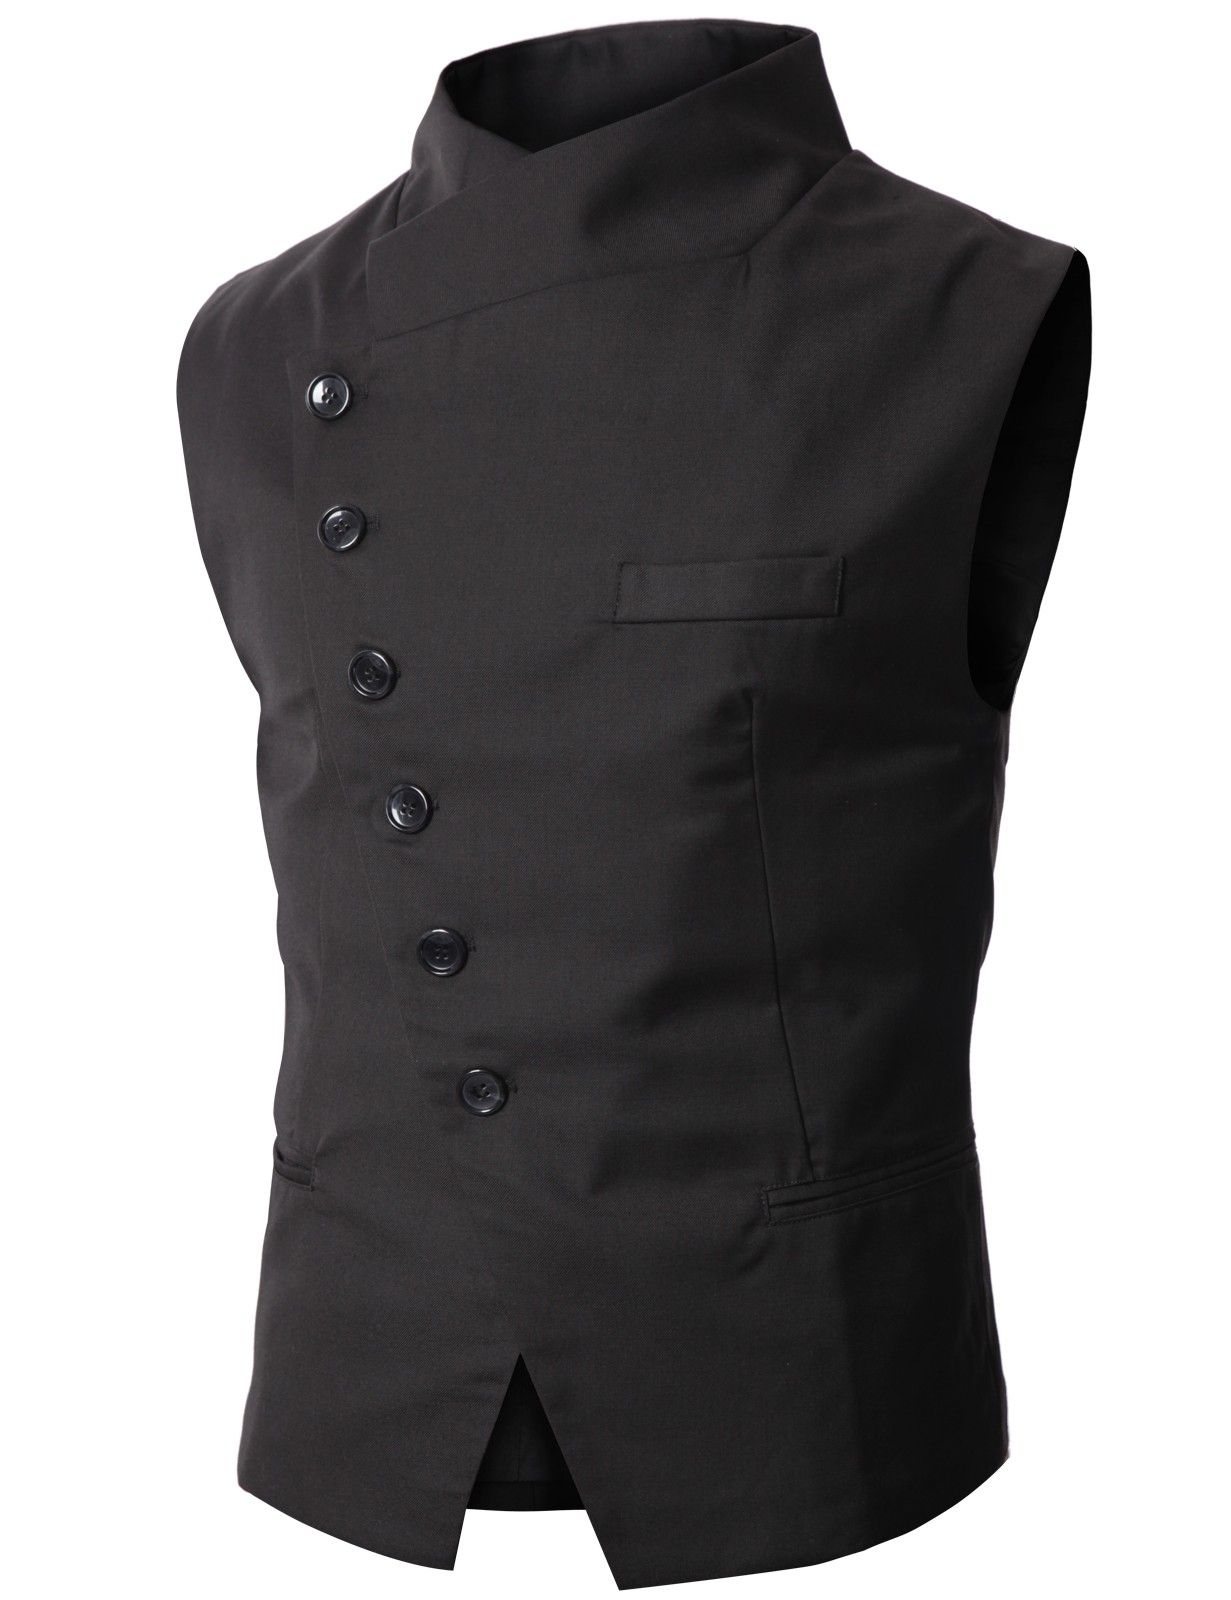 Stylish men's vest--a bit of a mix between oriental, elegant, and  post-modern if you ask me (love it)